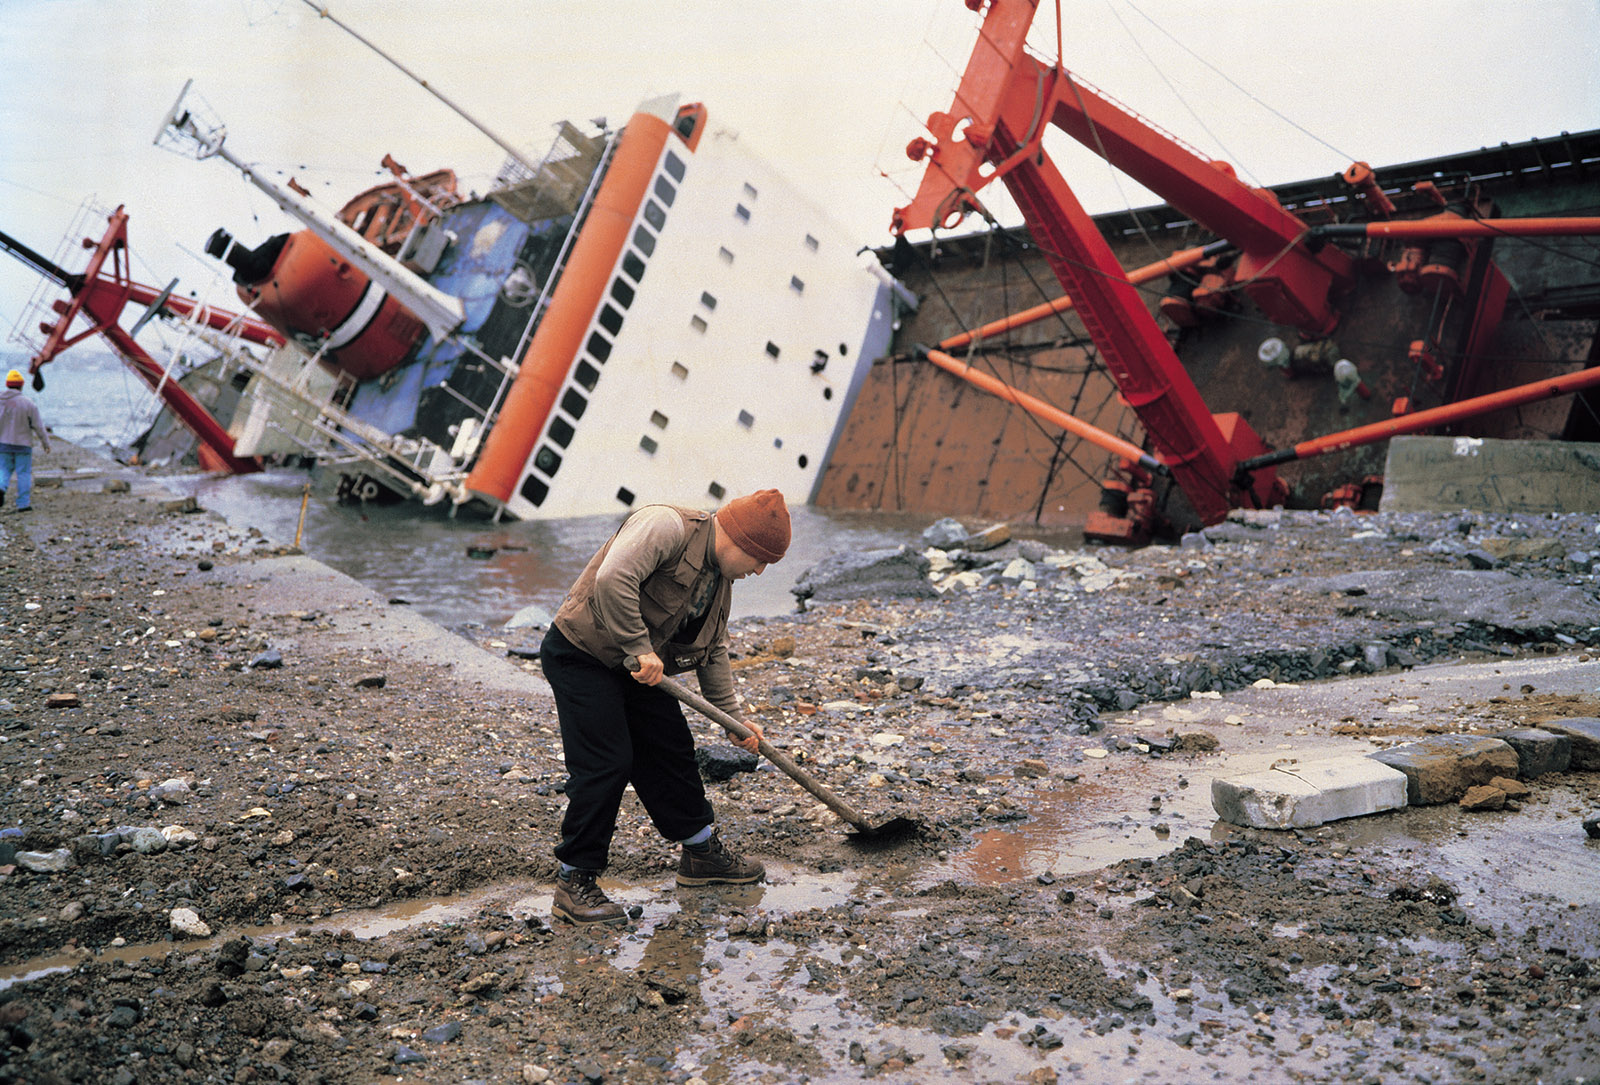 Shipwreck and worker, Istanbul; photograph by Allan Sekula